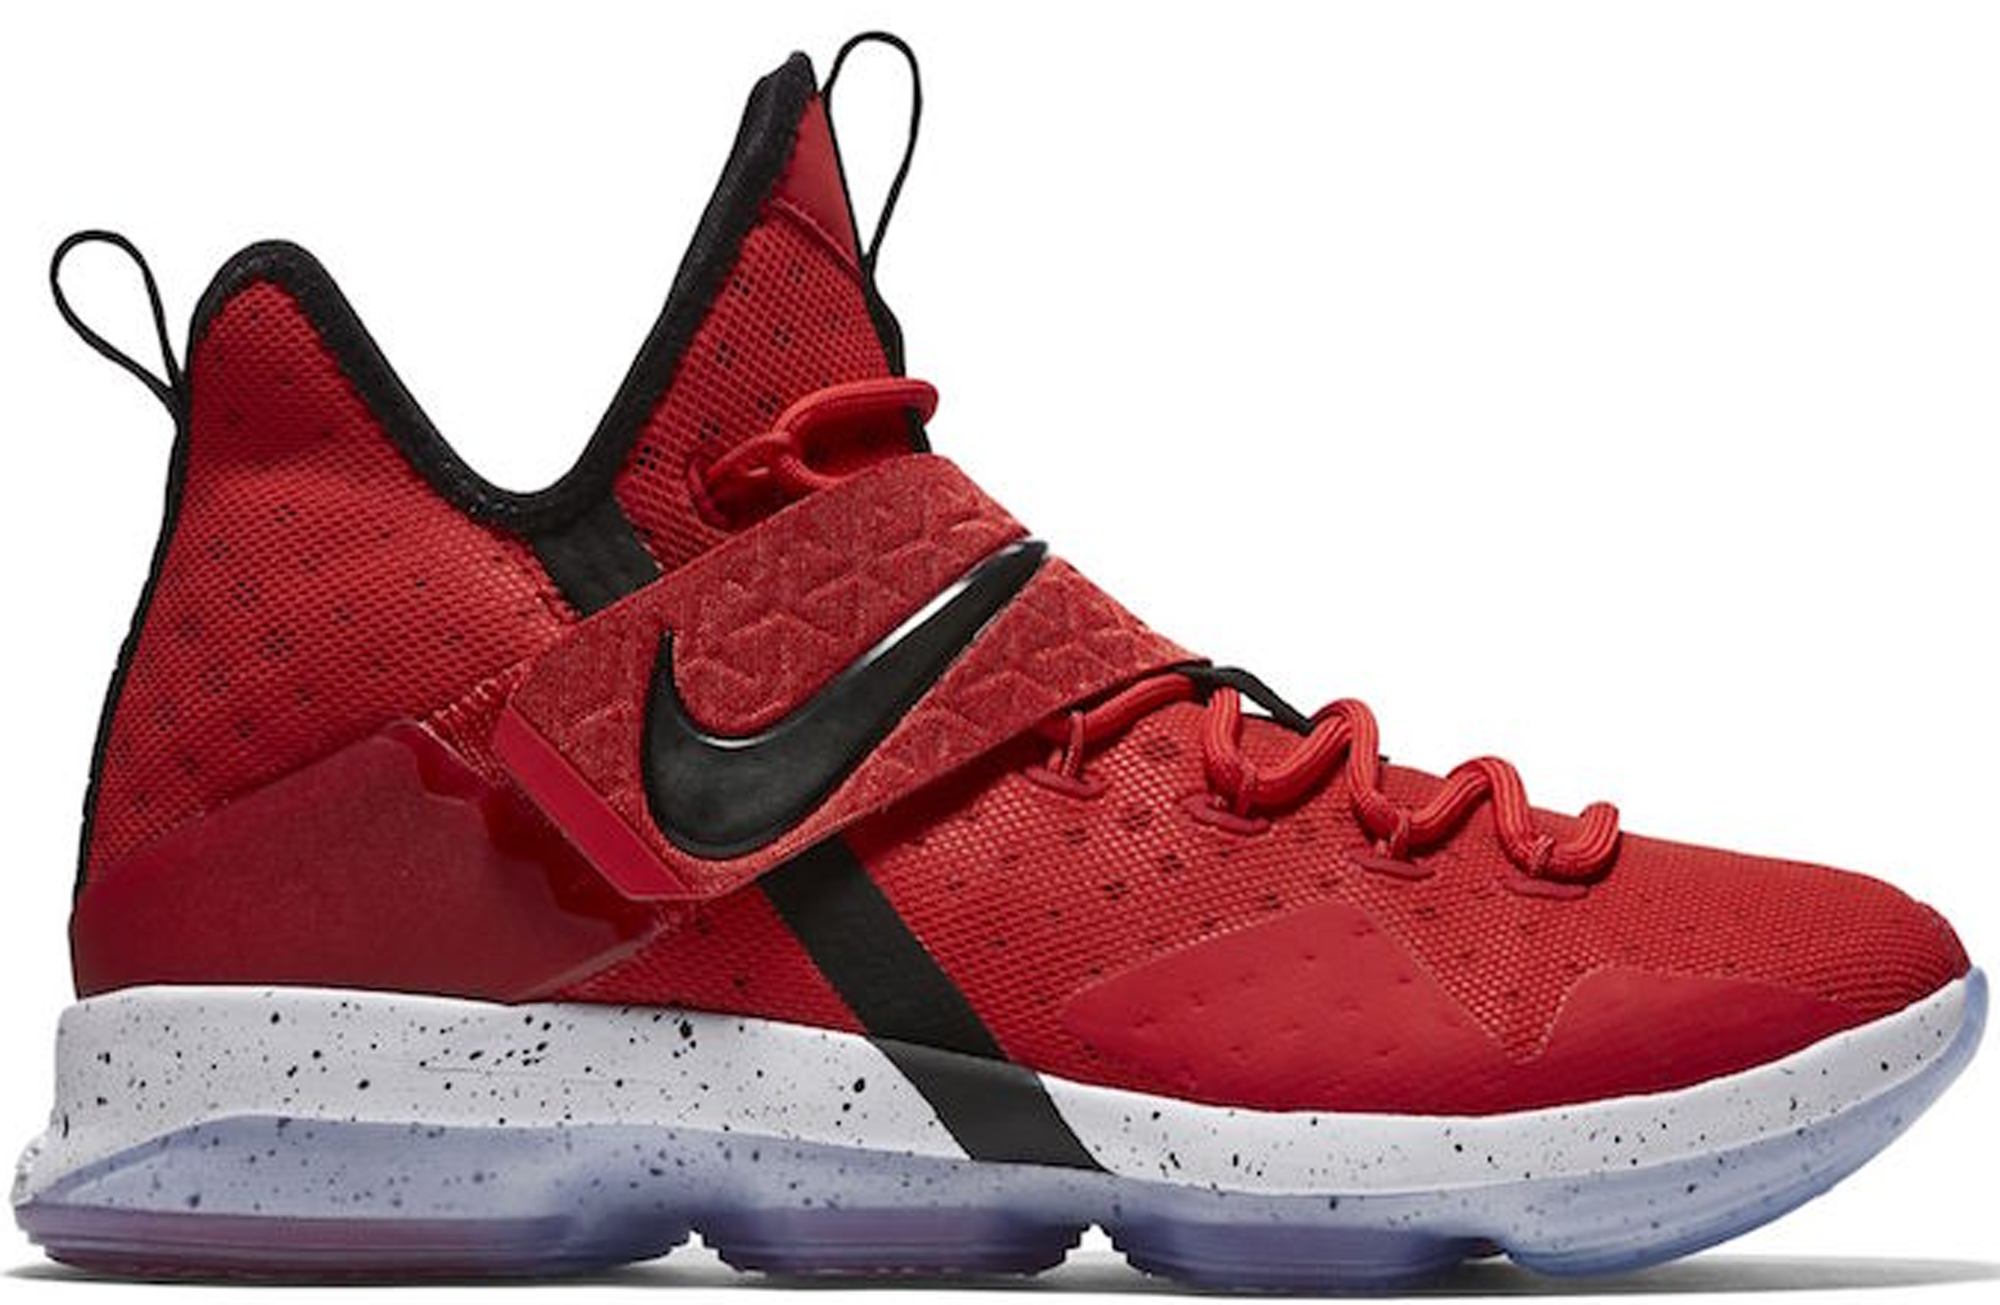 Nike LeBron 14 Red Brick Road - StockX News 5ff312afe6d0